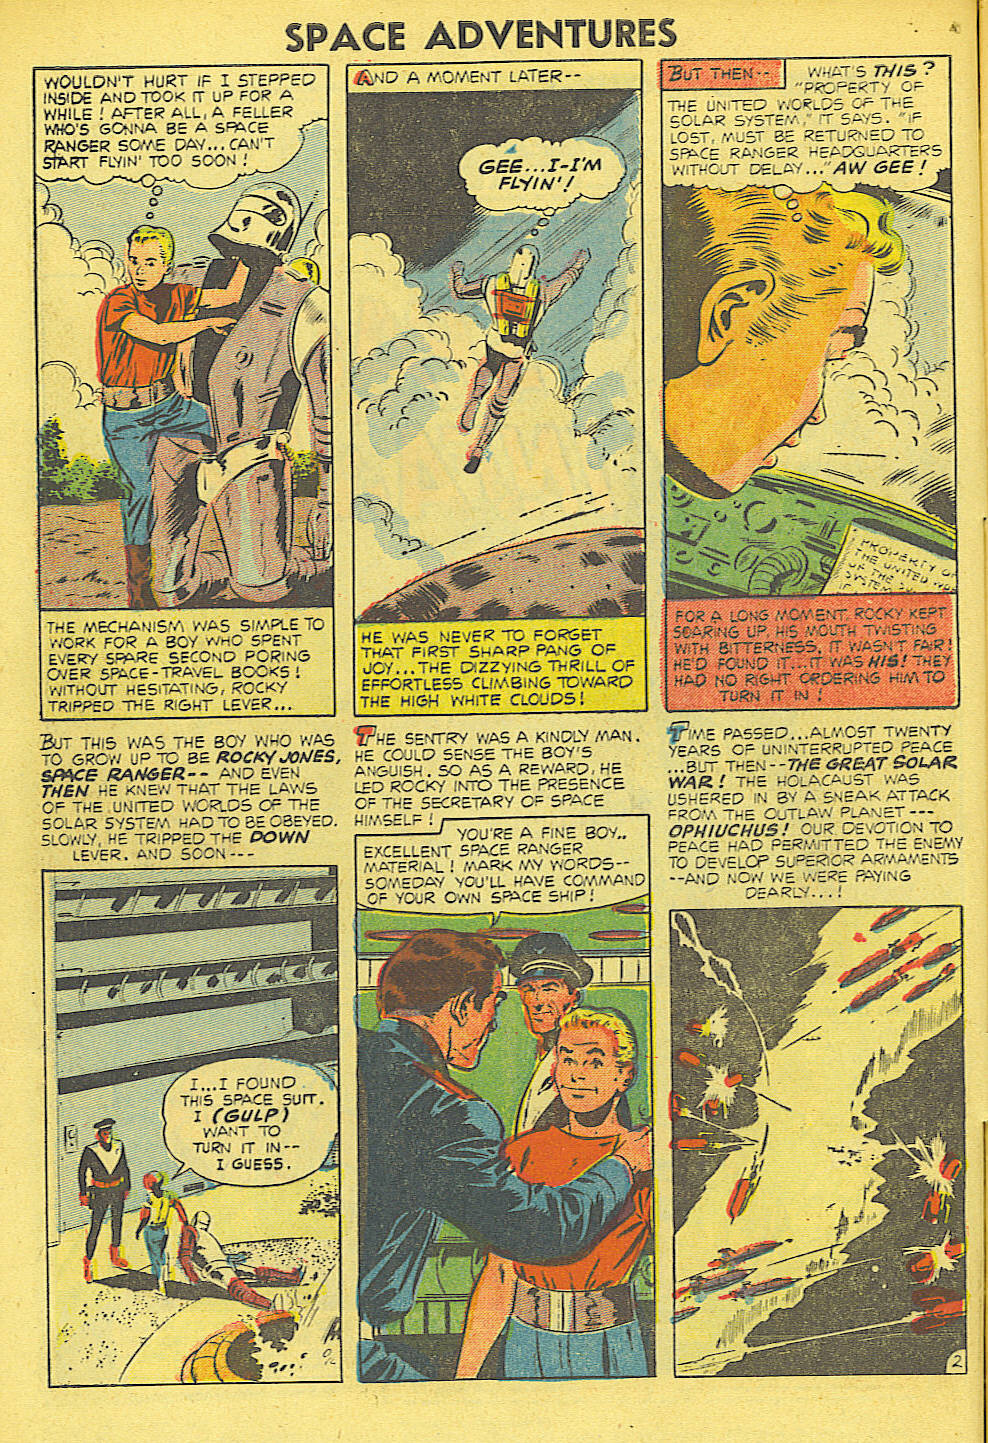 Read online Space Adventures comic -  Issue #15 - 3